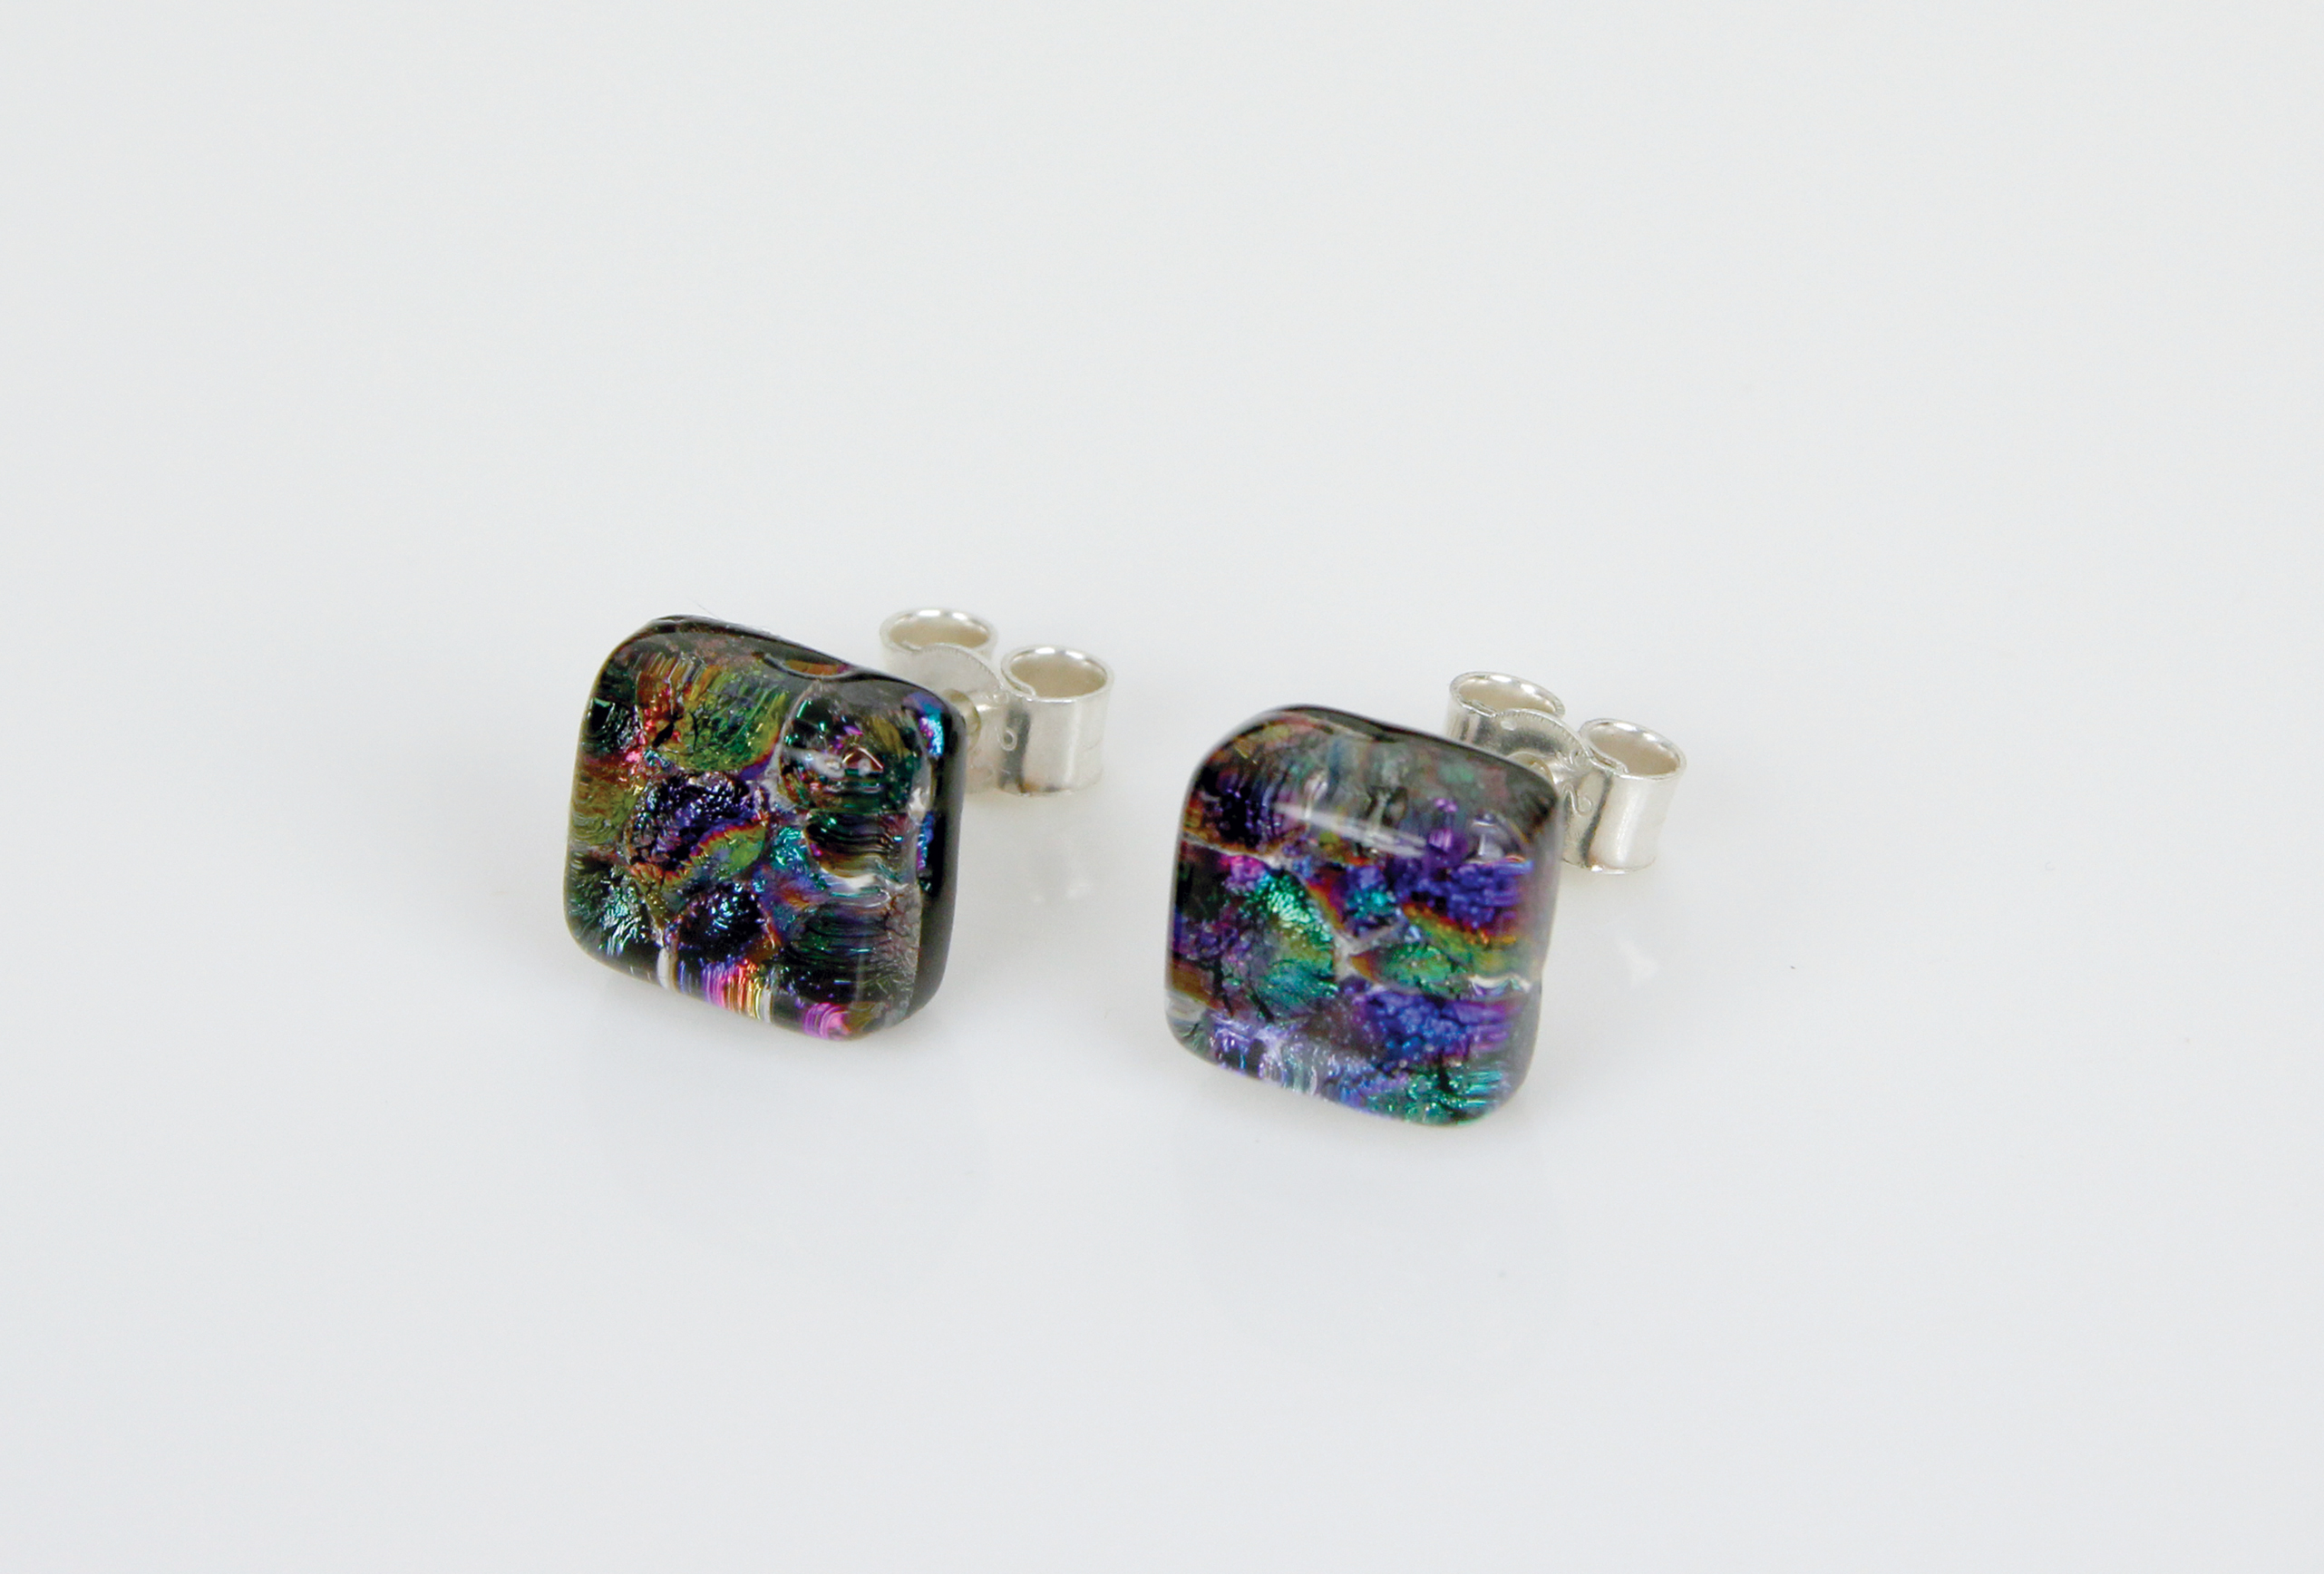 Dichroic glass jewellery uk, handmade stud earrings with reptilian coloured dichroic glass, square, sterling glass 7-10mm, silver posts.